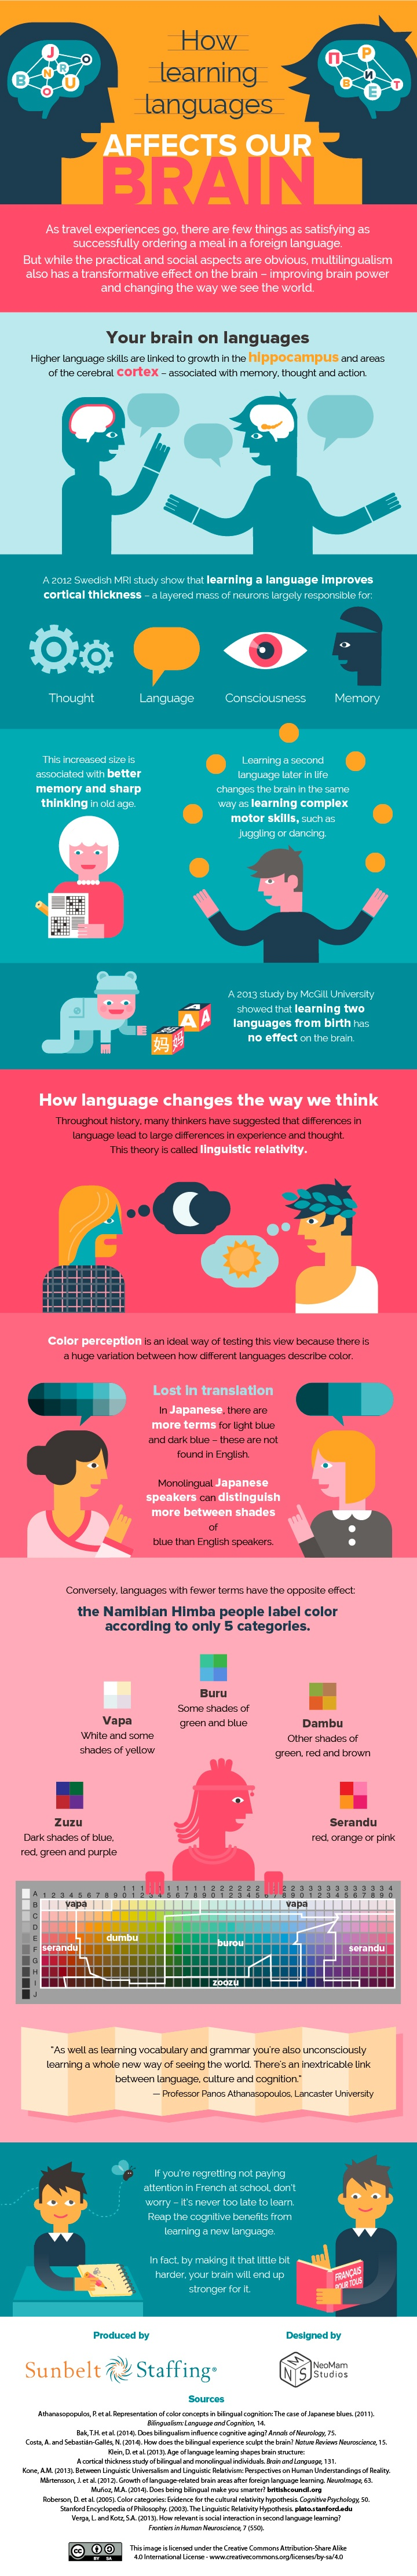 How Learning Languages Affects Our Brain Infographic